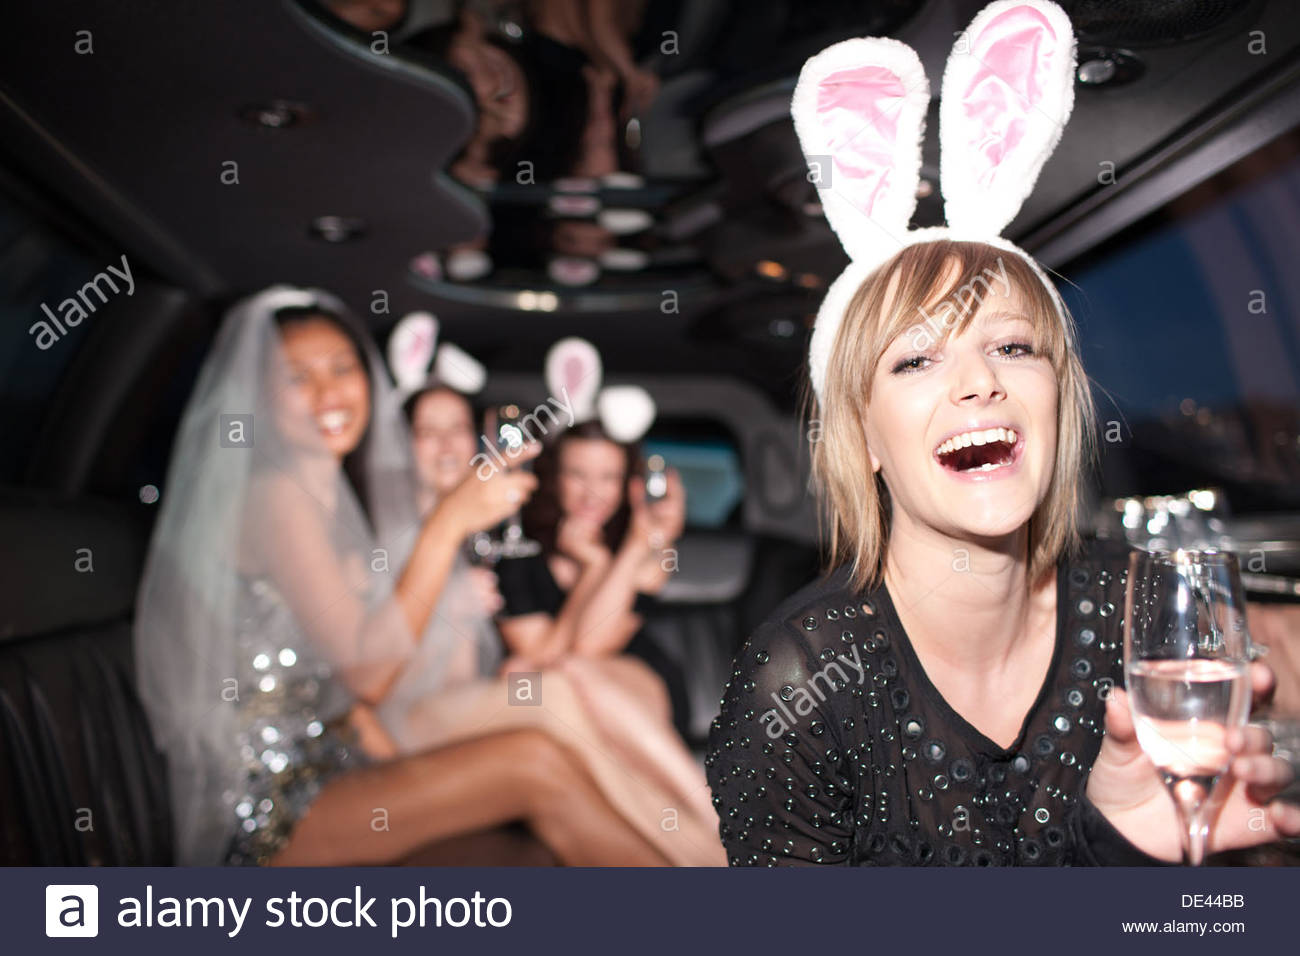 Woman in Bunny Ears drinking champagne in limo Photo Stock